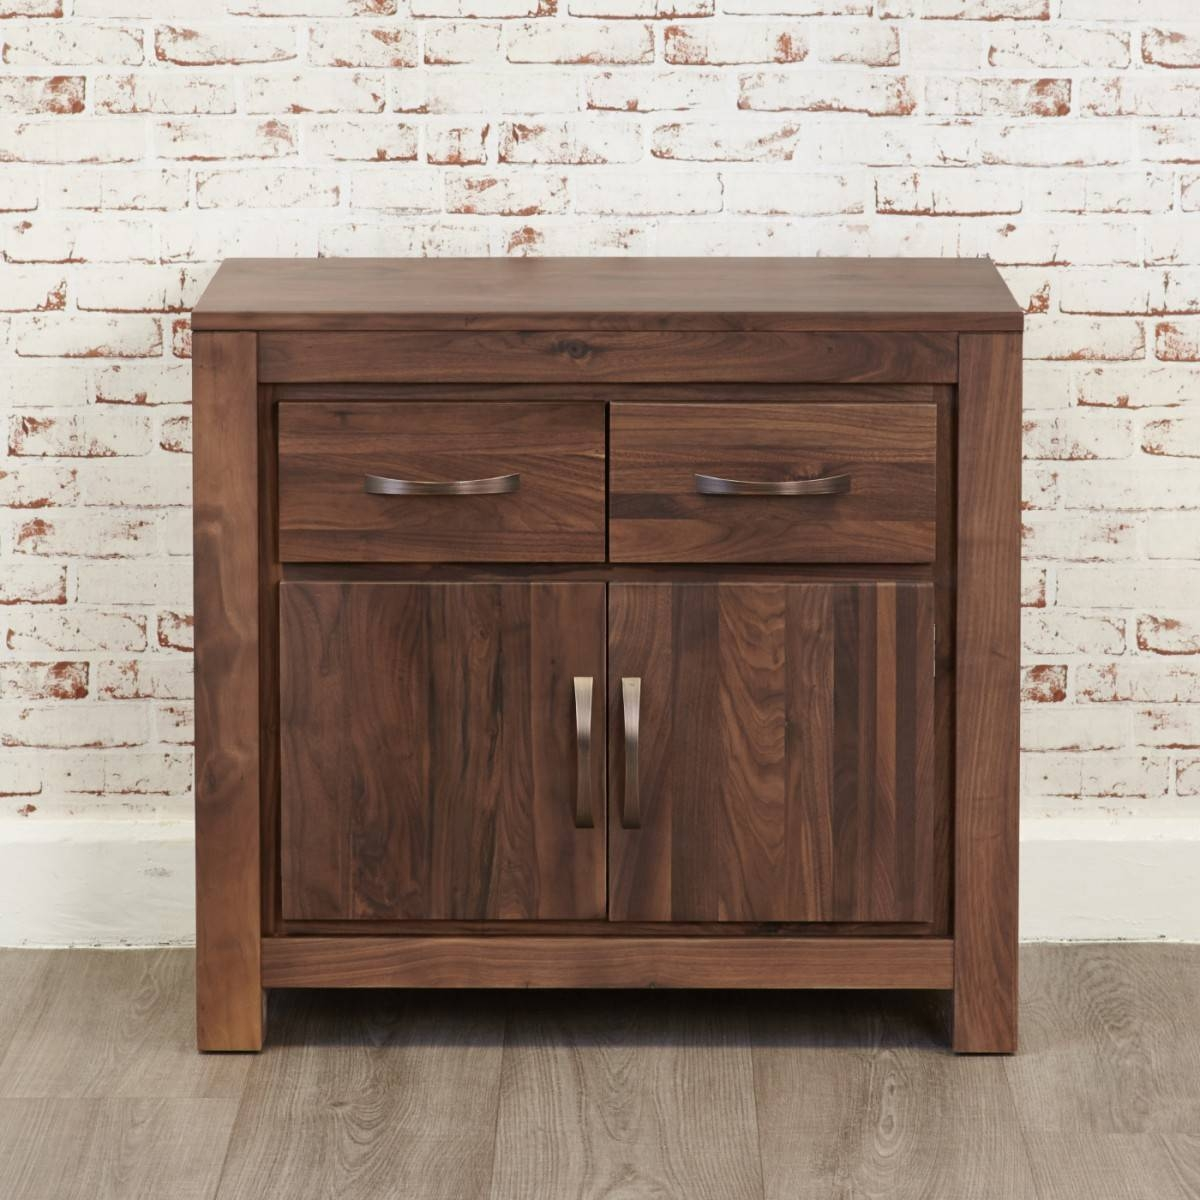 Baumhaus Mayan Walnut Small Sideboard Cwc02C Intended For Small Sideboard (#2 of 20)